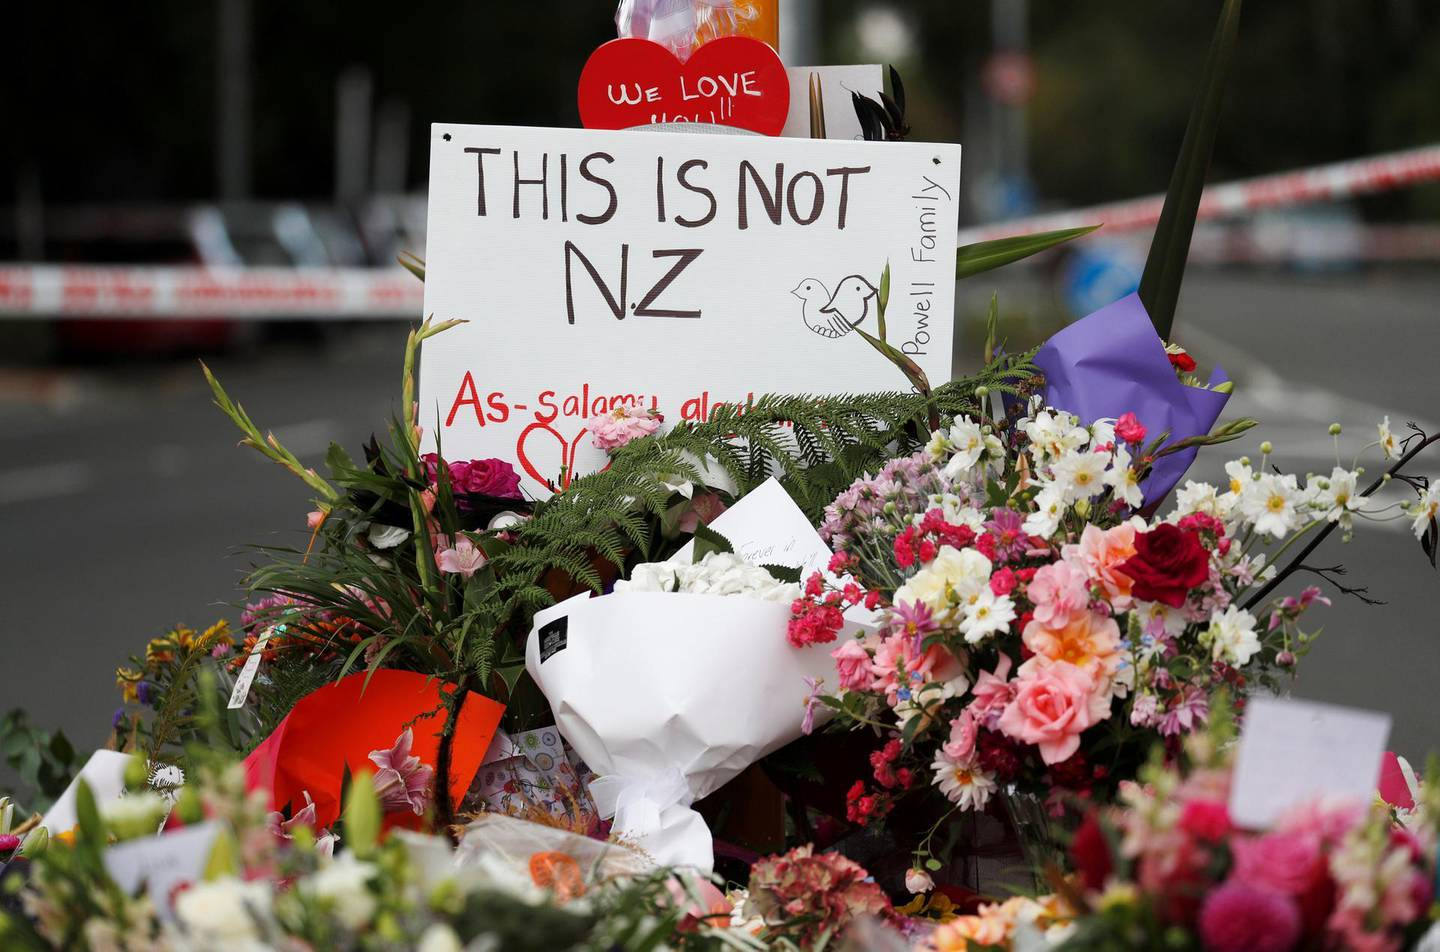 Flowers and signs are seen at a memorial as a tribute to victims of the mosque attacks, near Linwood mosque in Christchurch, New Zealand, March 16, 2019. REUTERS/Edgar Su